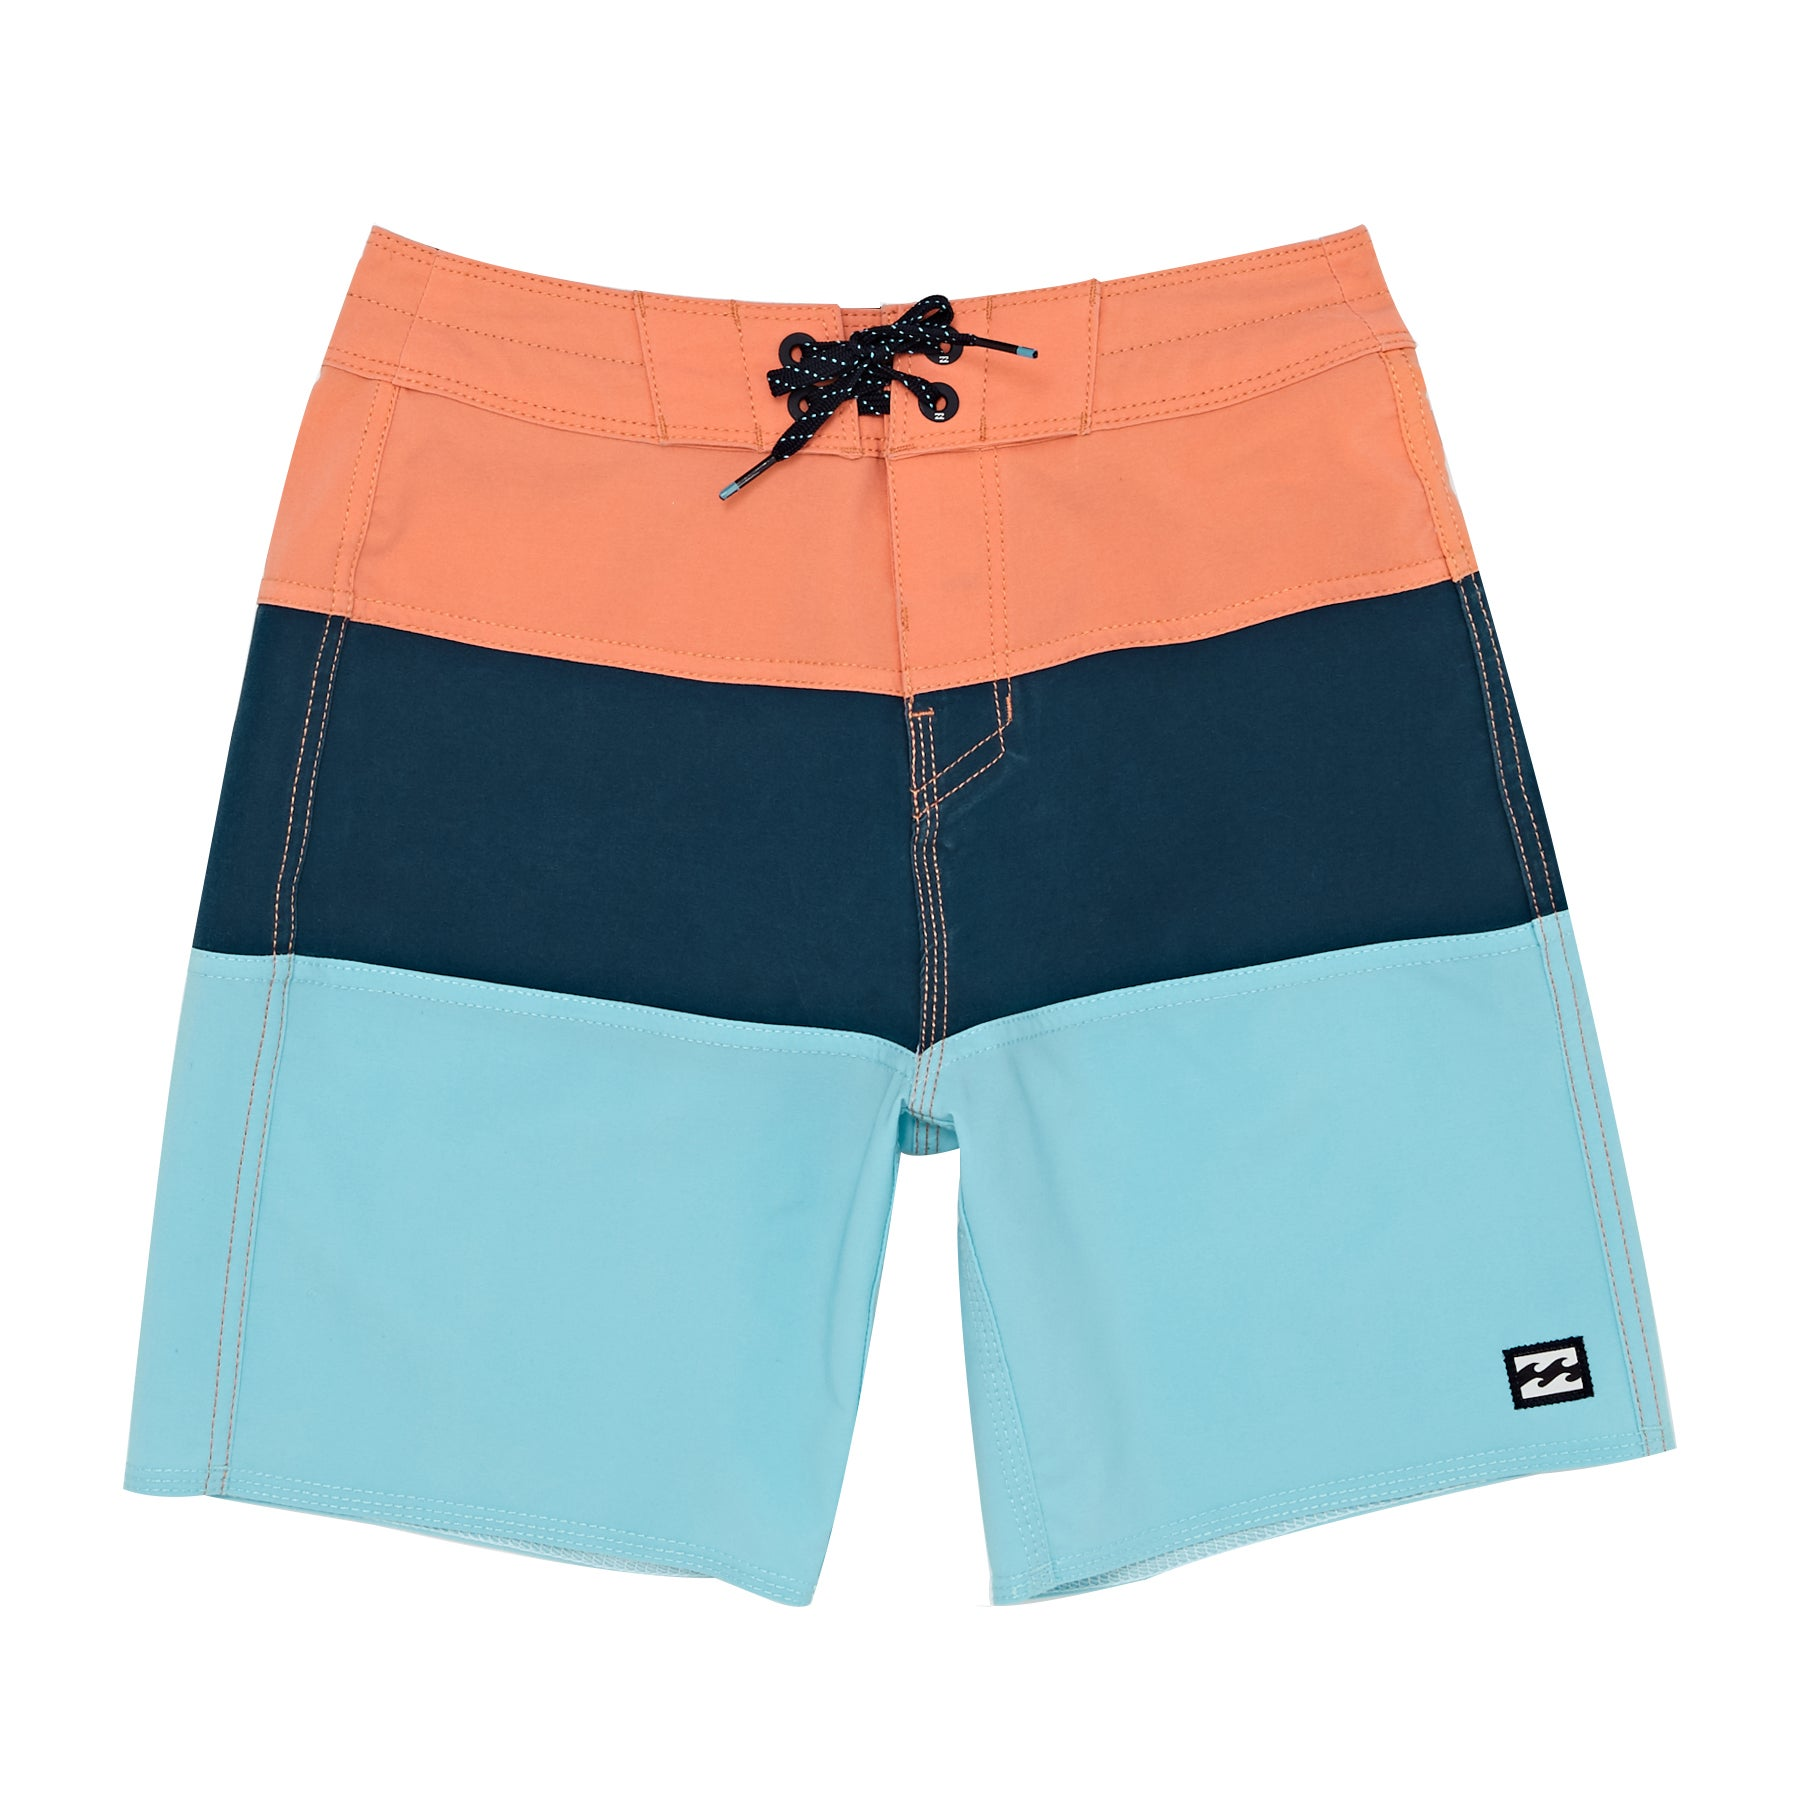 Shorts de surf Niño Billabong Tribong Pro Solid - Orange